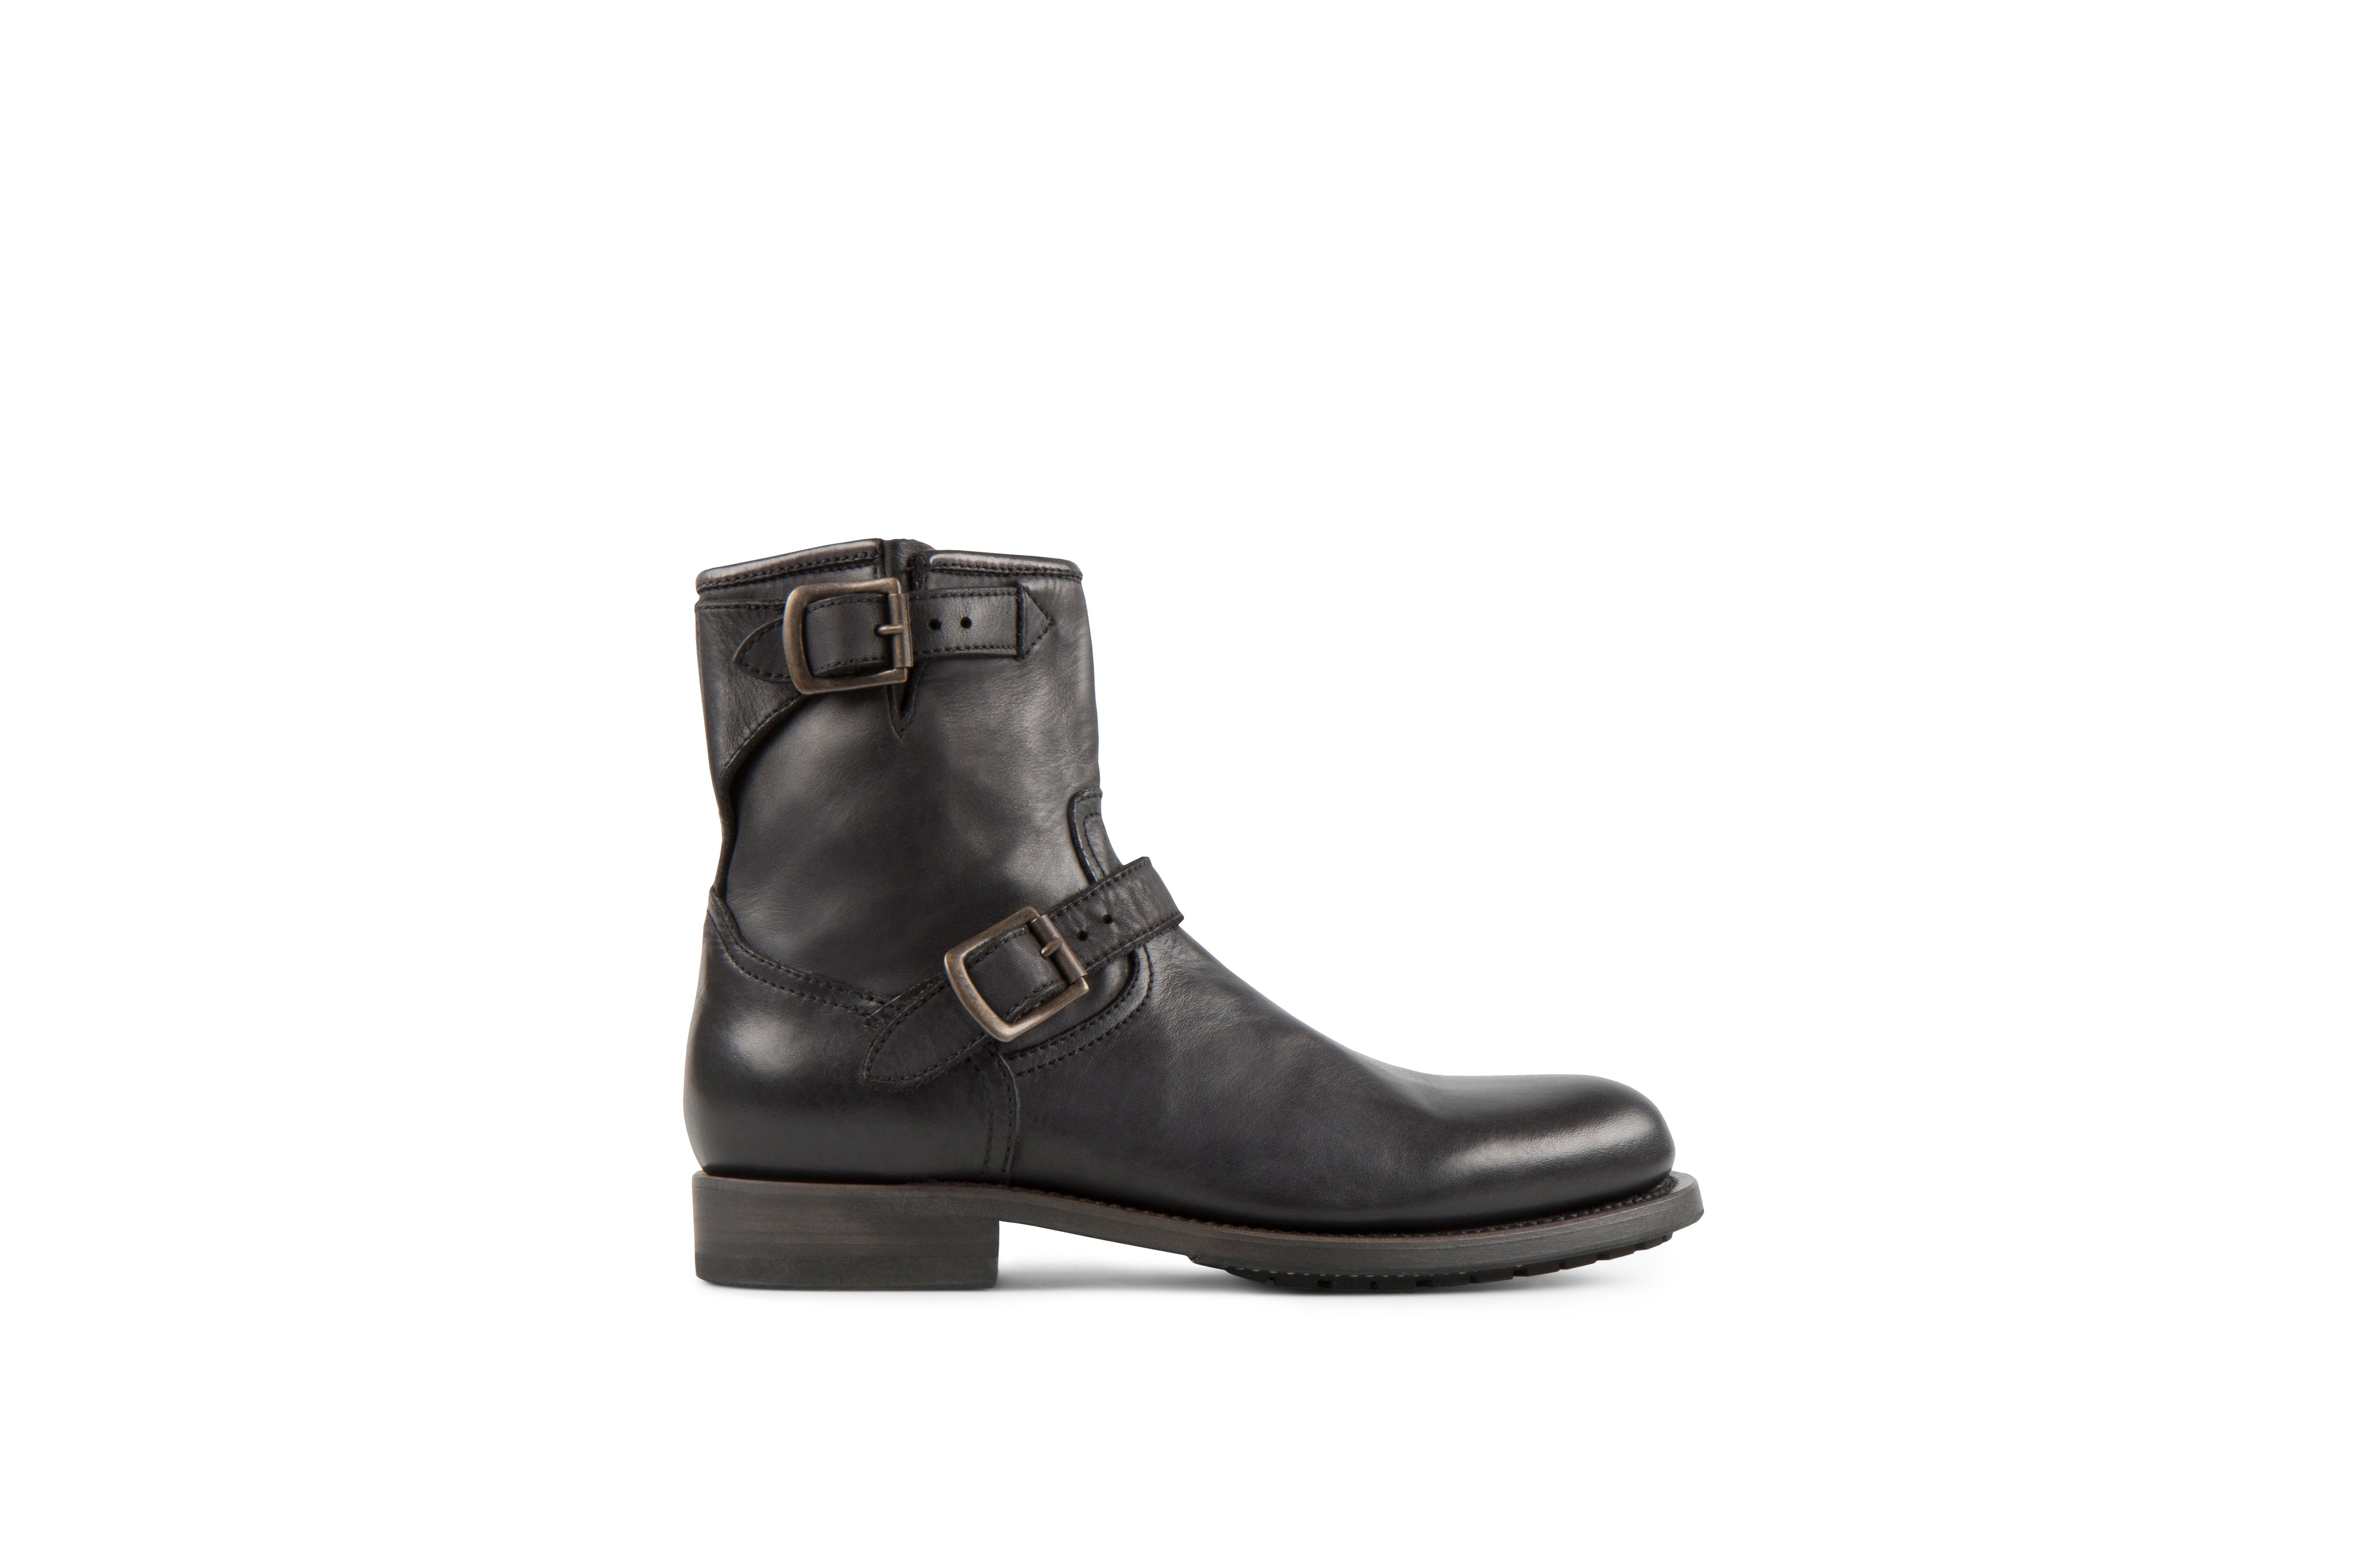 Lowrider Black Washed Calf Leather Rock Boots